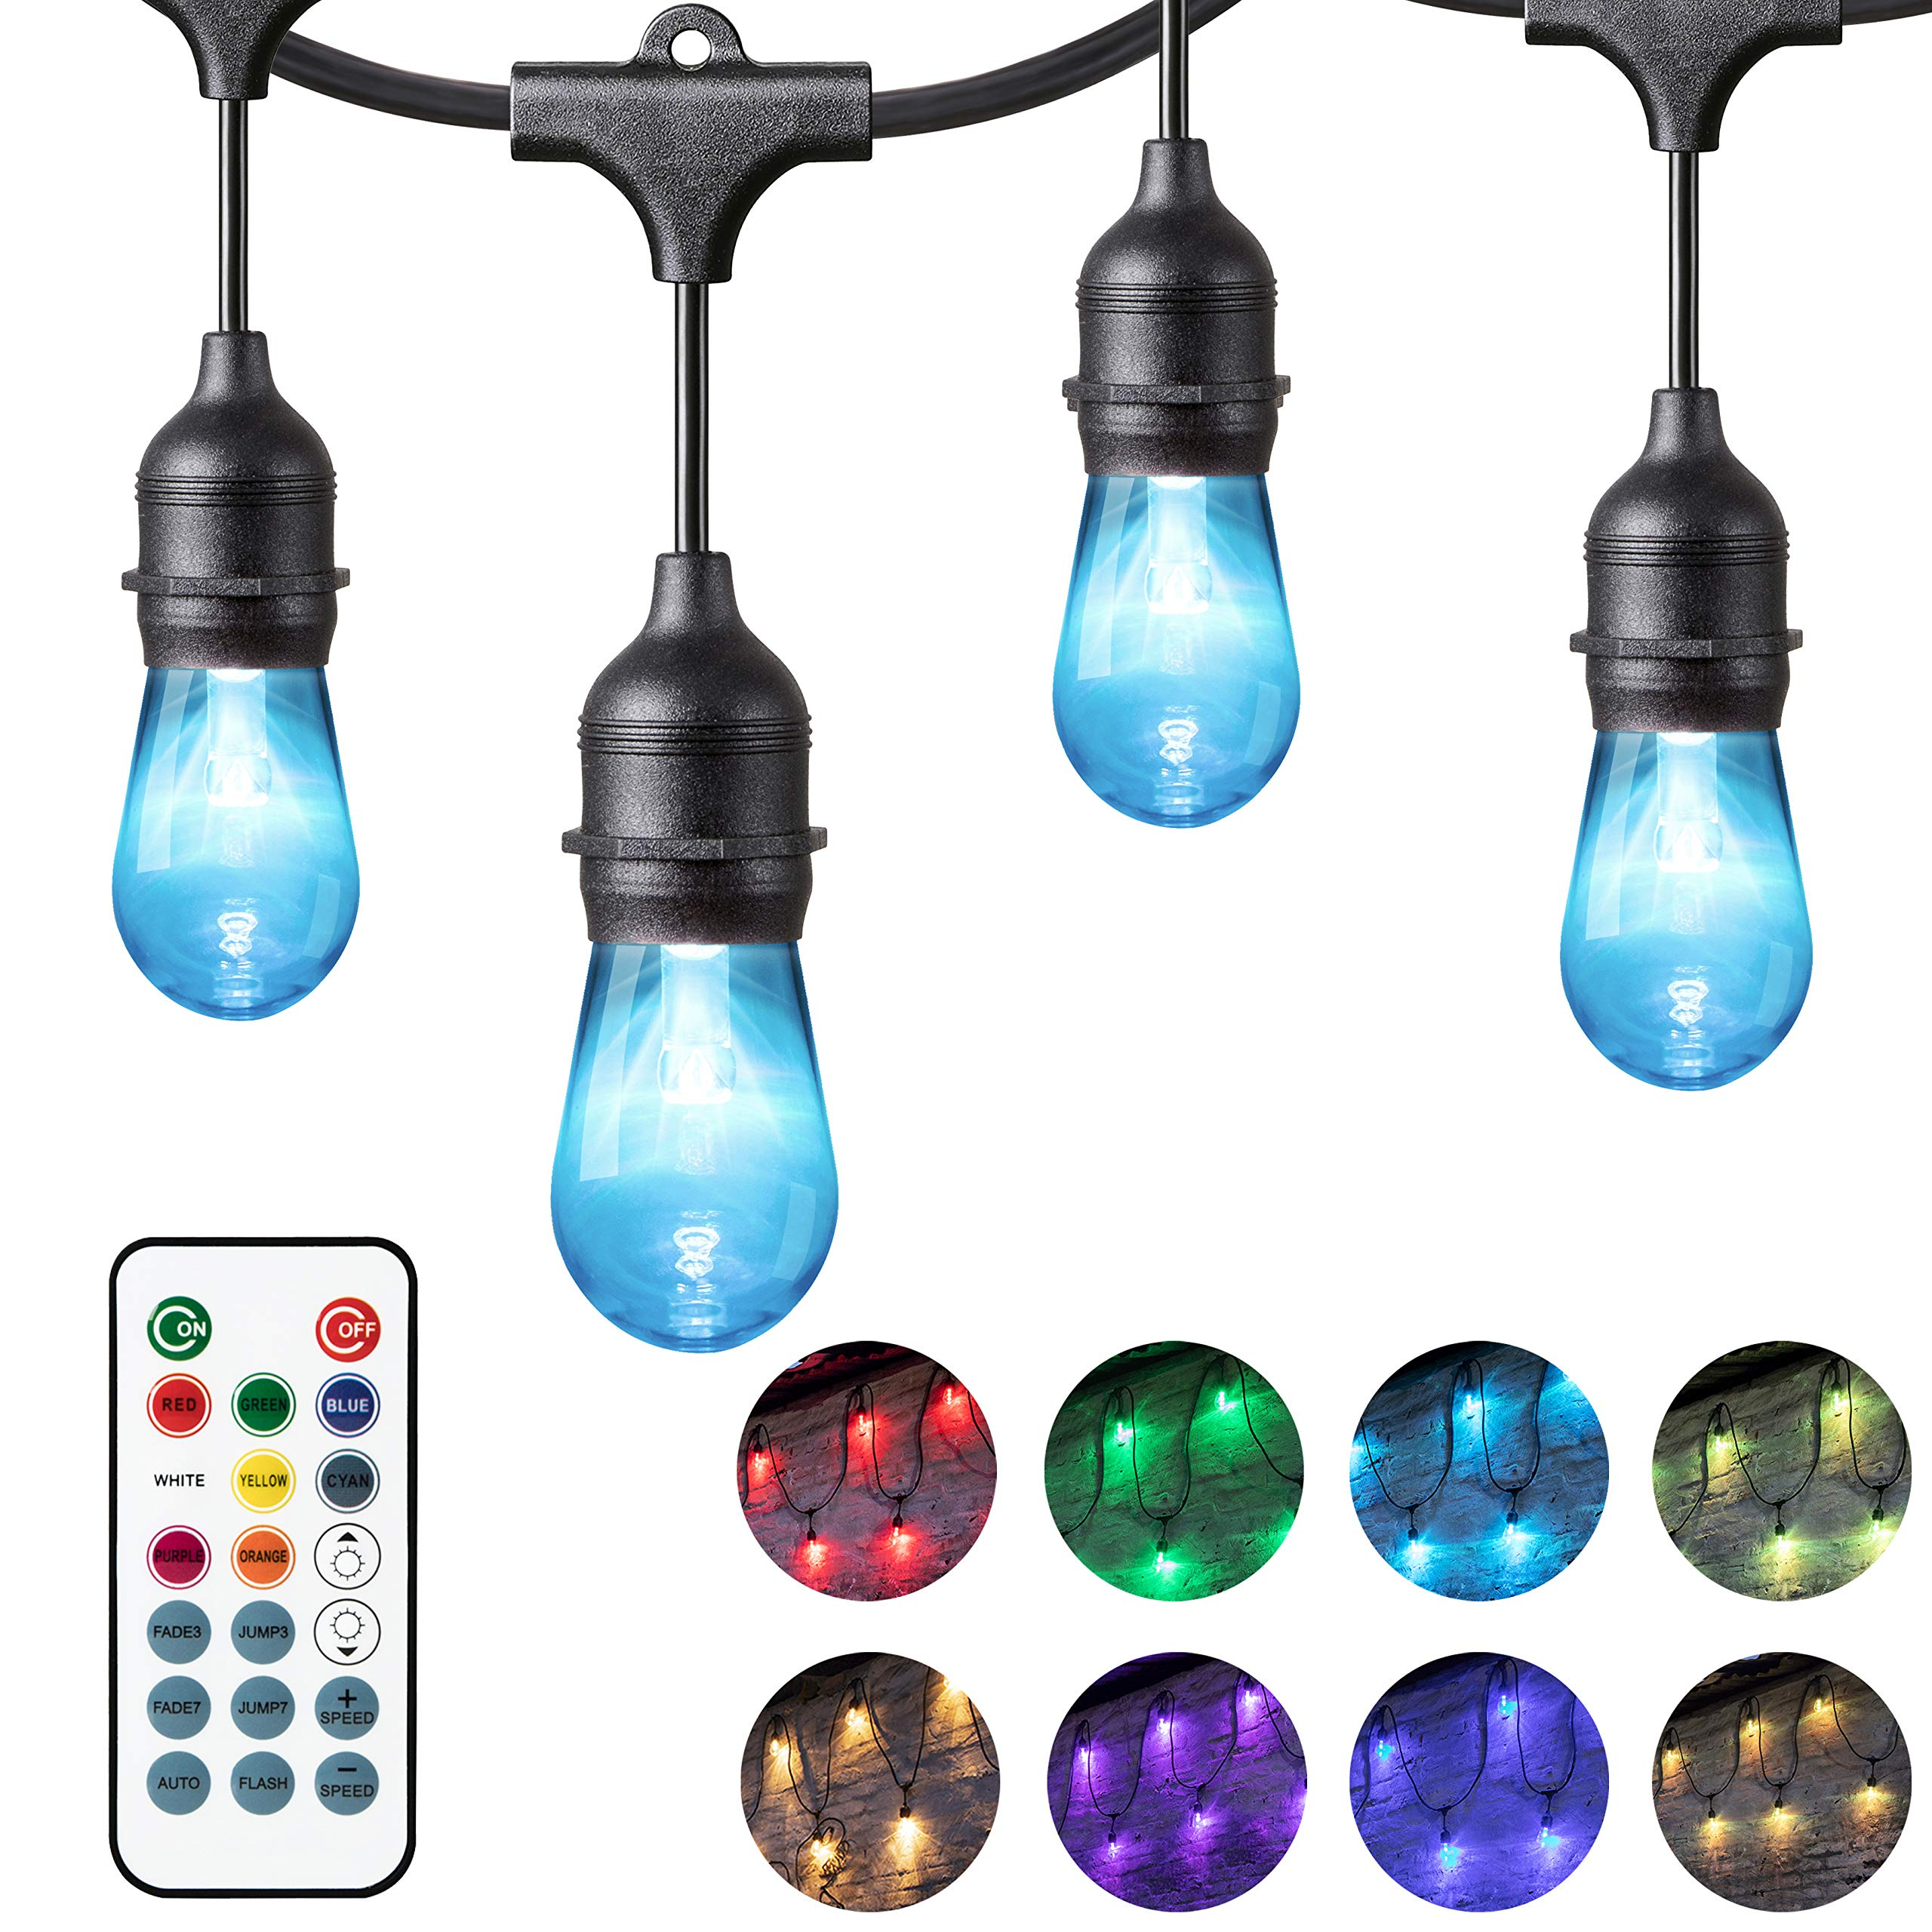 Chende 24ft Color Changing Outdoor String Lights for Patio, Commercial Grade Hanging LED Café Lights with Smart Remote, Weatherproof Outside Party Lights with 12 Dimmable Bulbs